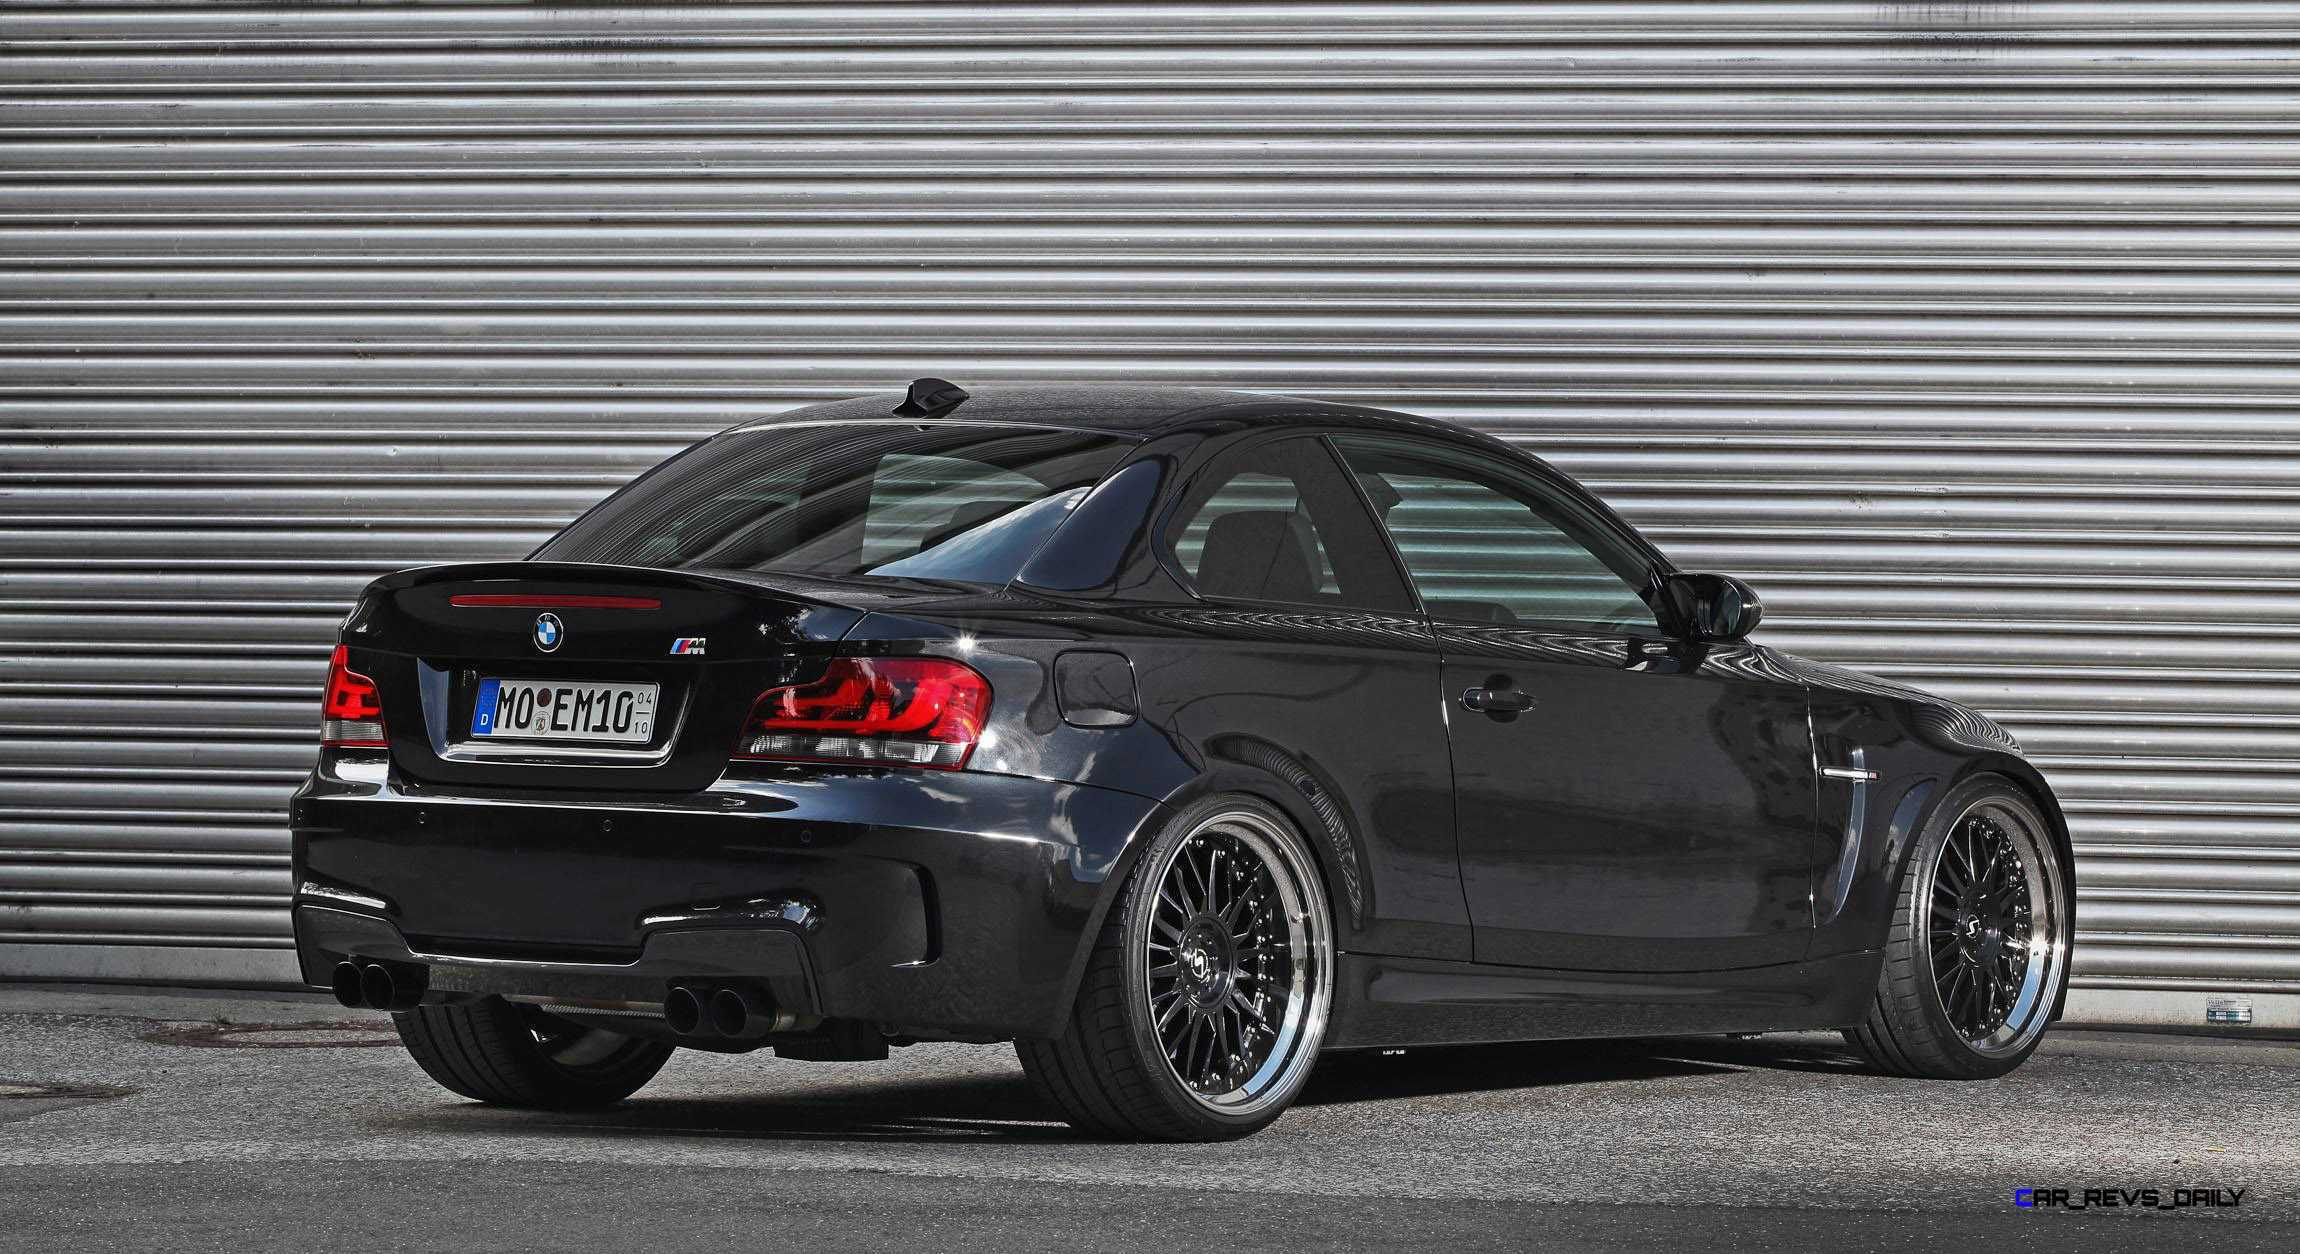 2011 bmw 1m coupe by ok chiptuning de 4